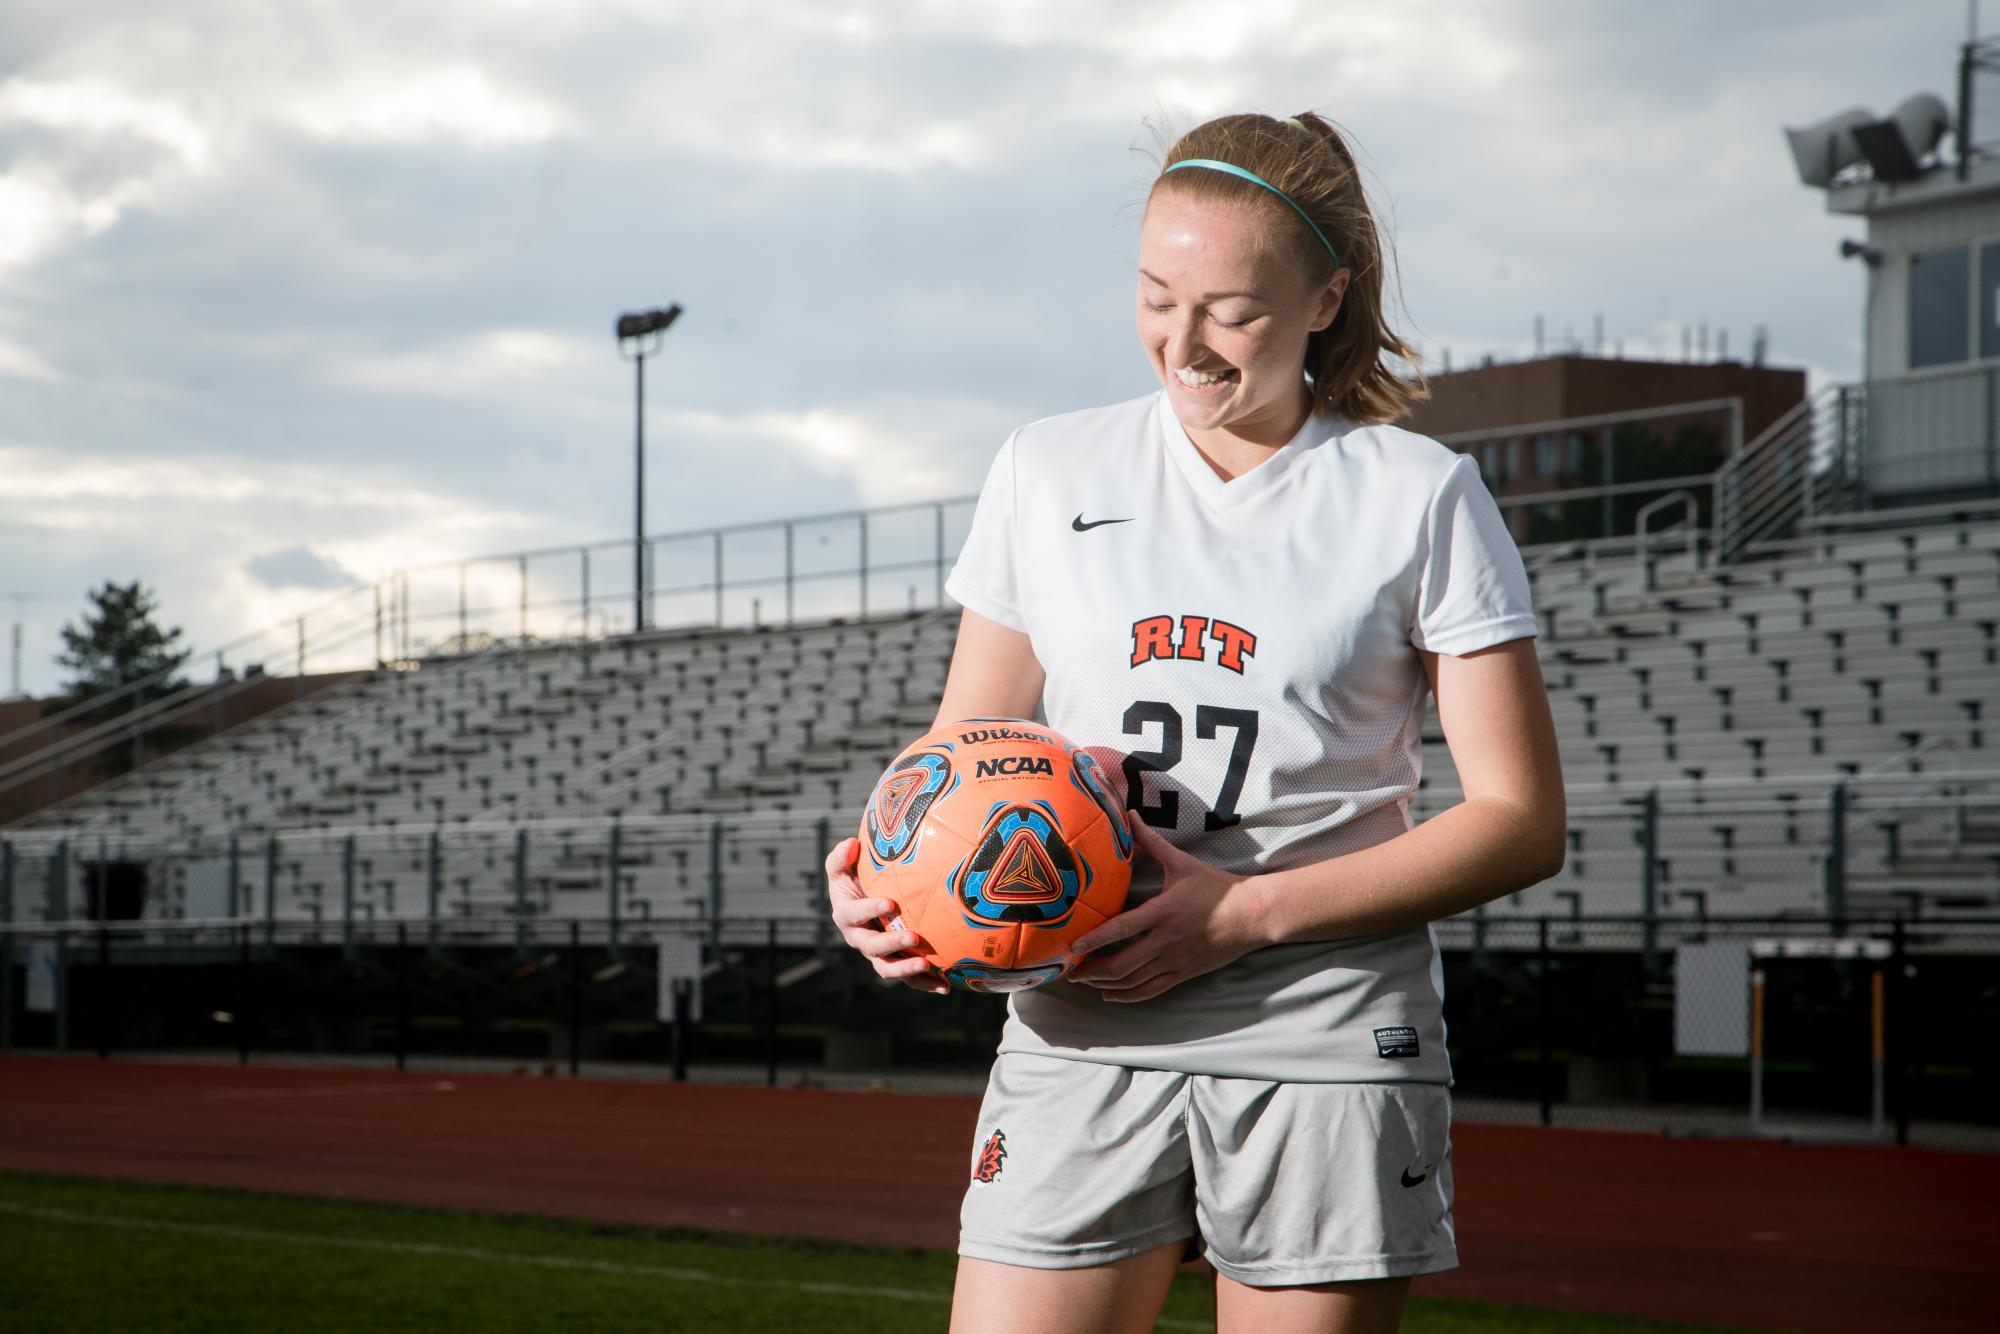 Natalie Hurd poses for portrait on RIT's soccer field. Photograph by Rob Rauchwerger.